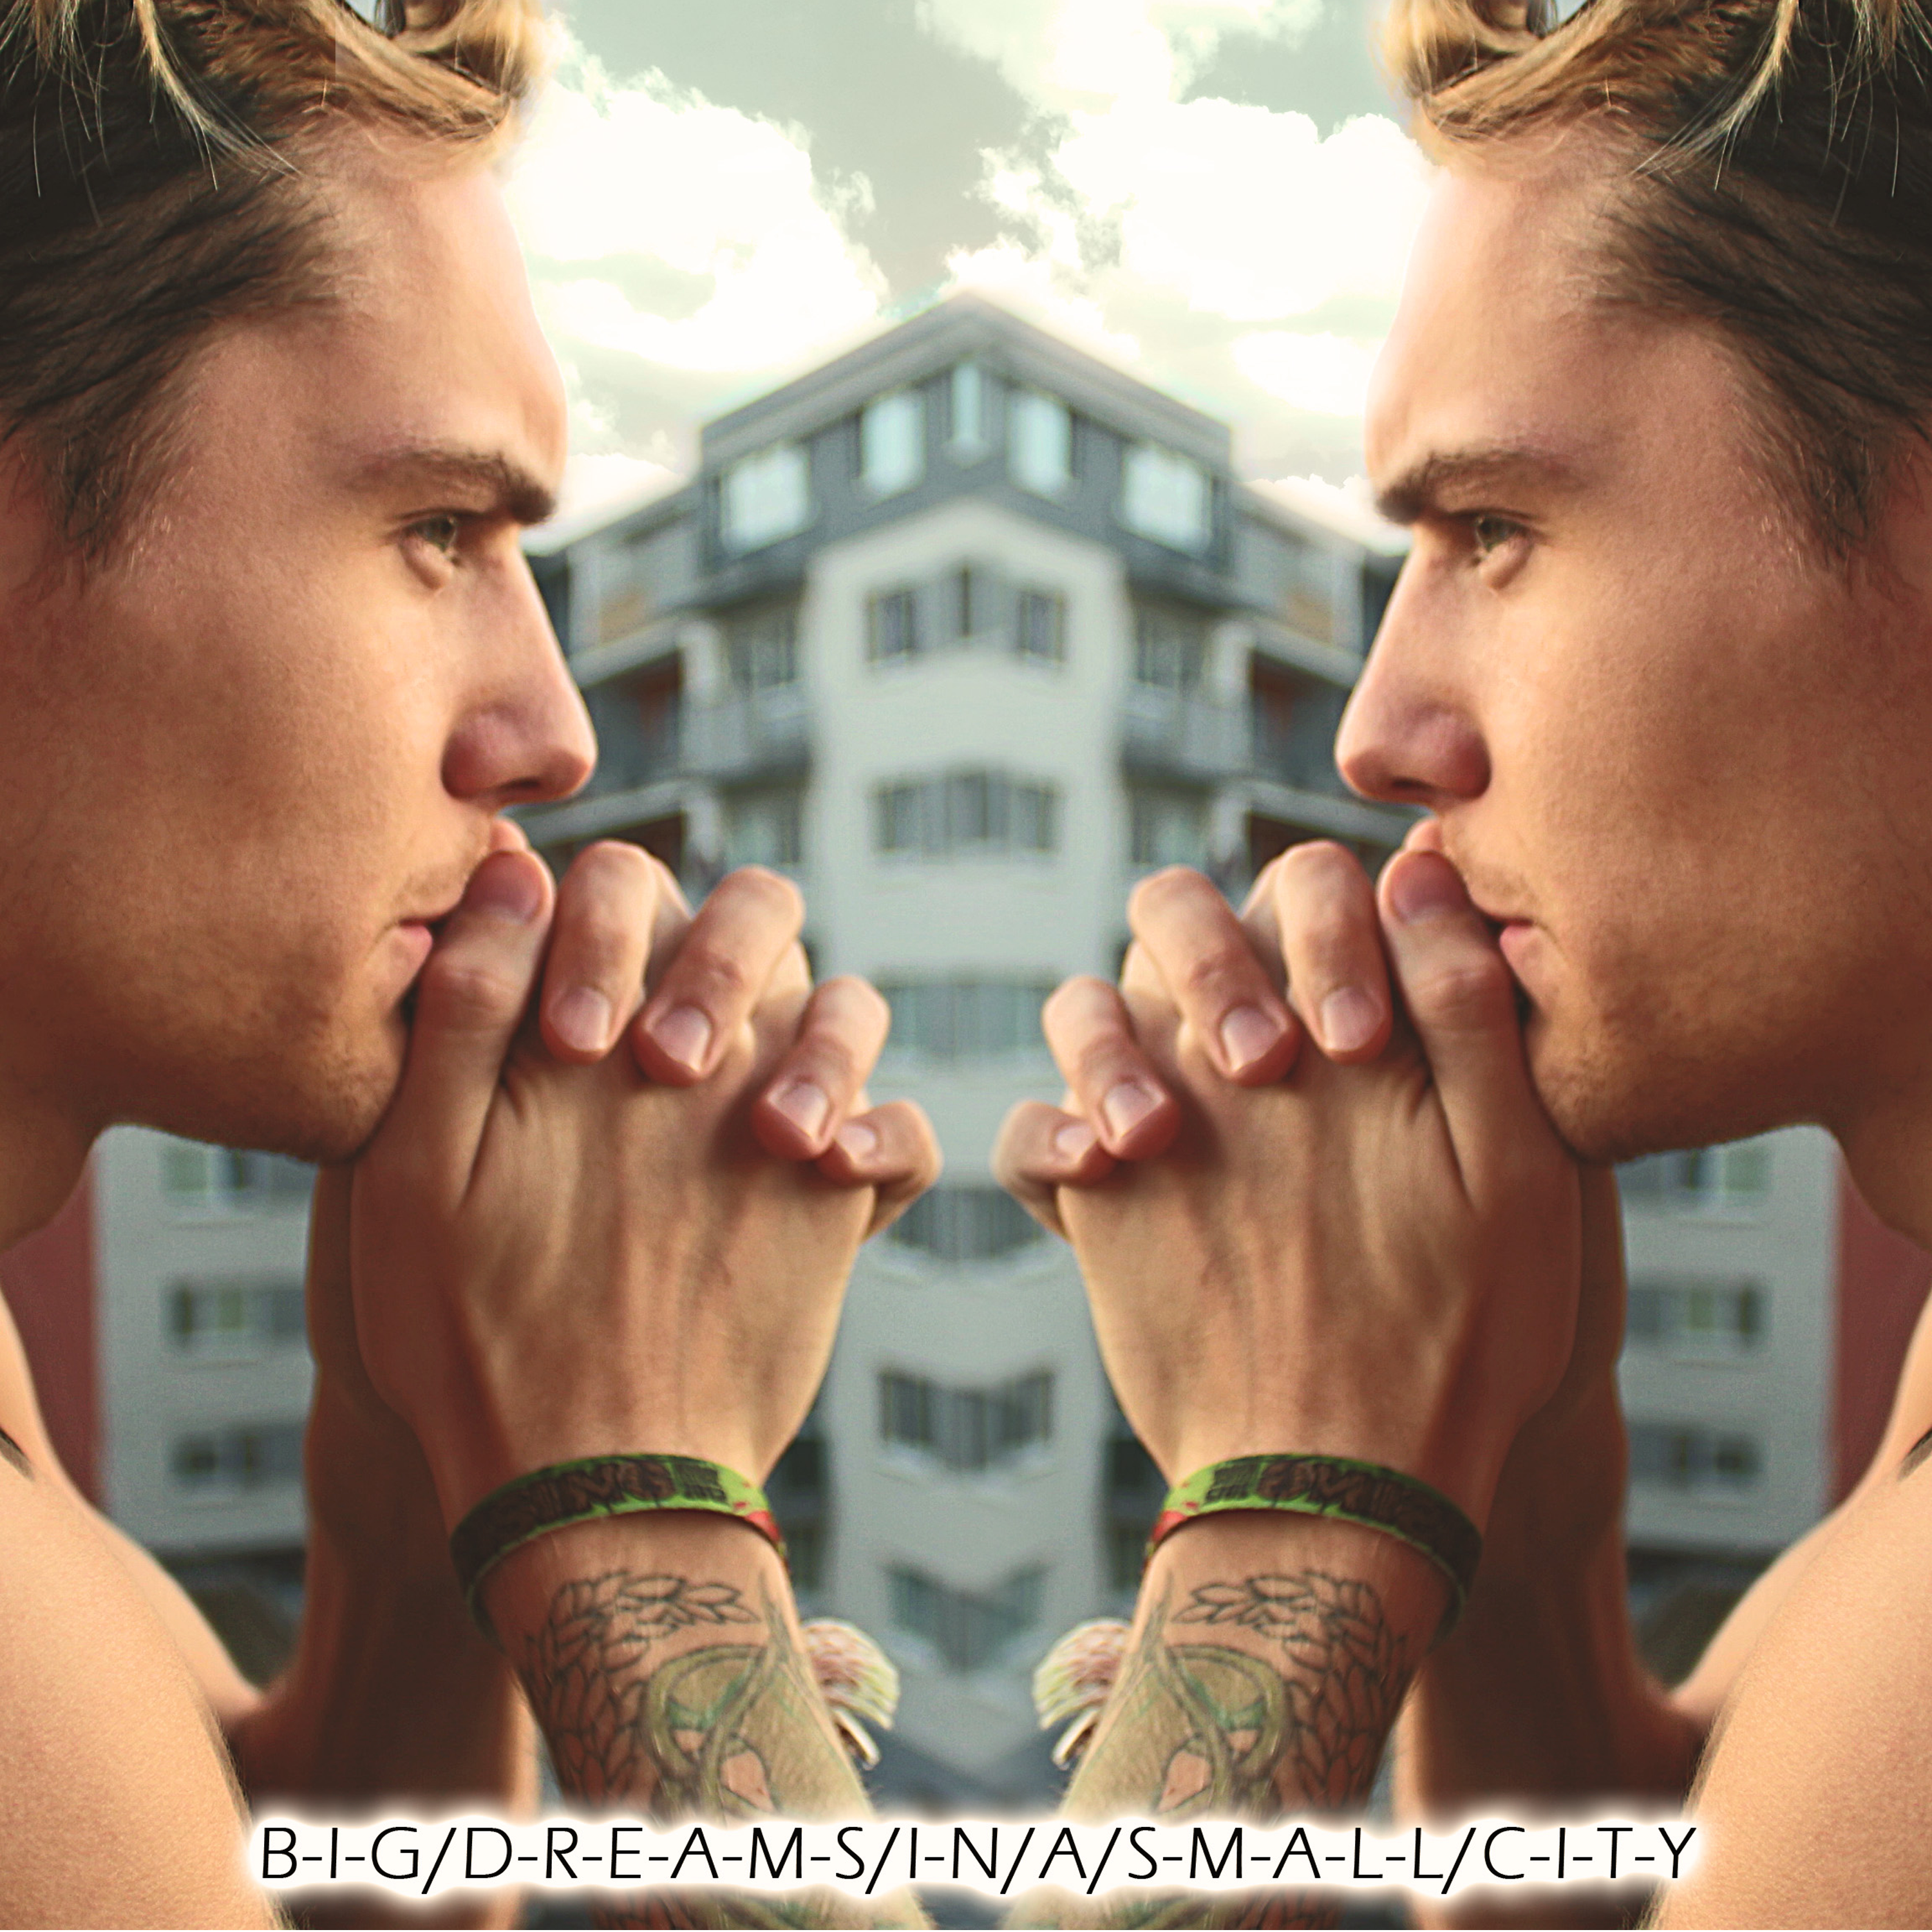 The 3rdstudio album Big Dreams In A Small City by PatGedeonis now available